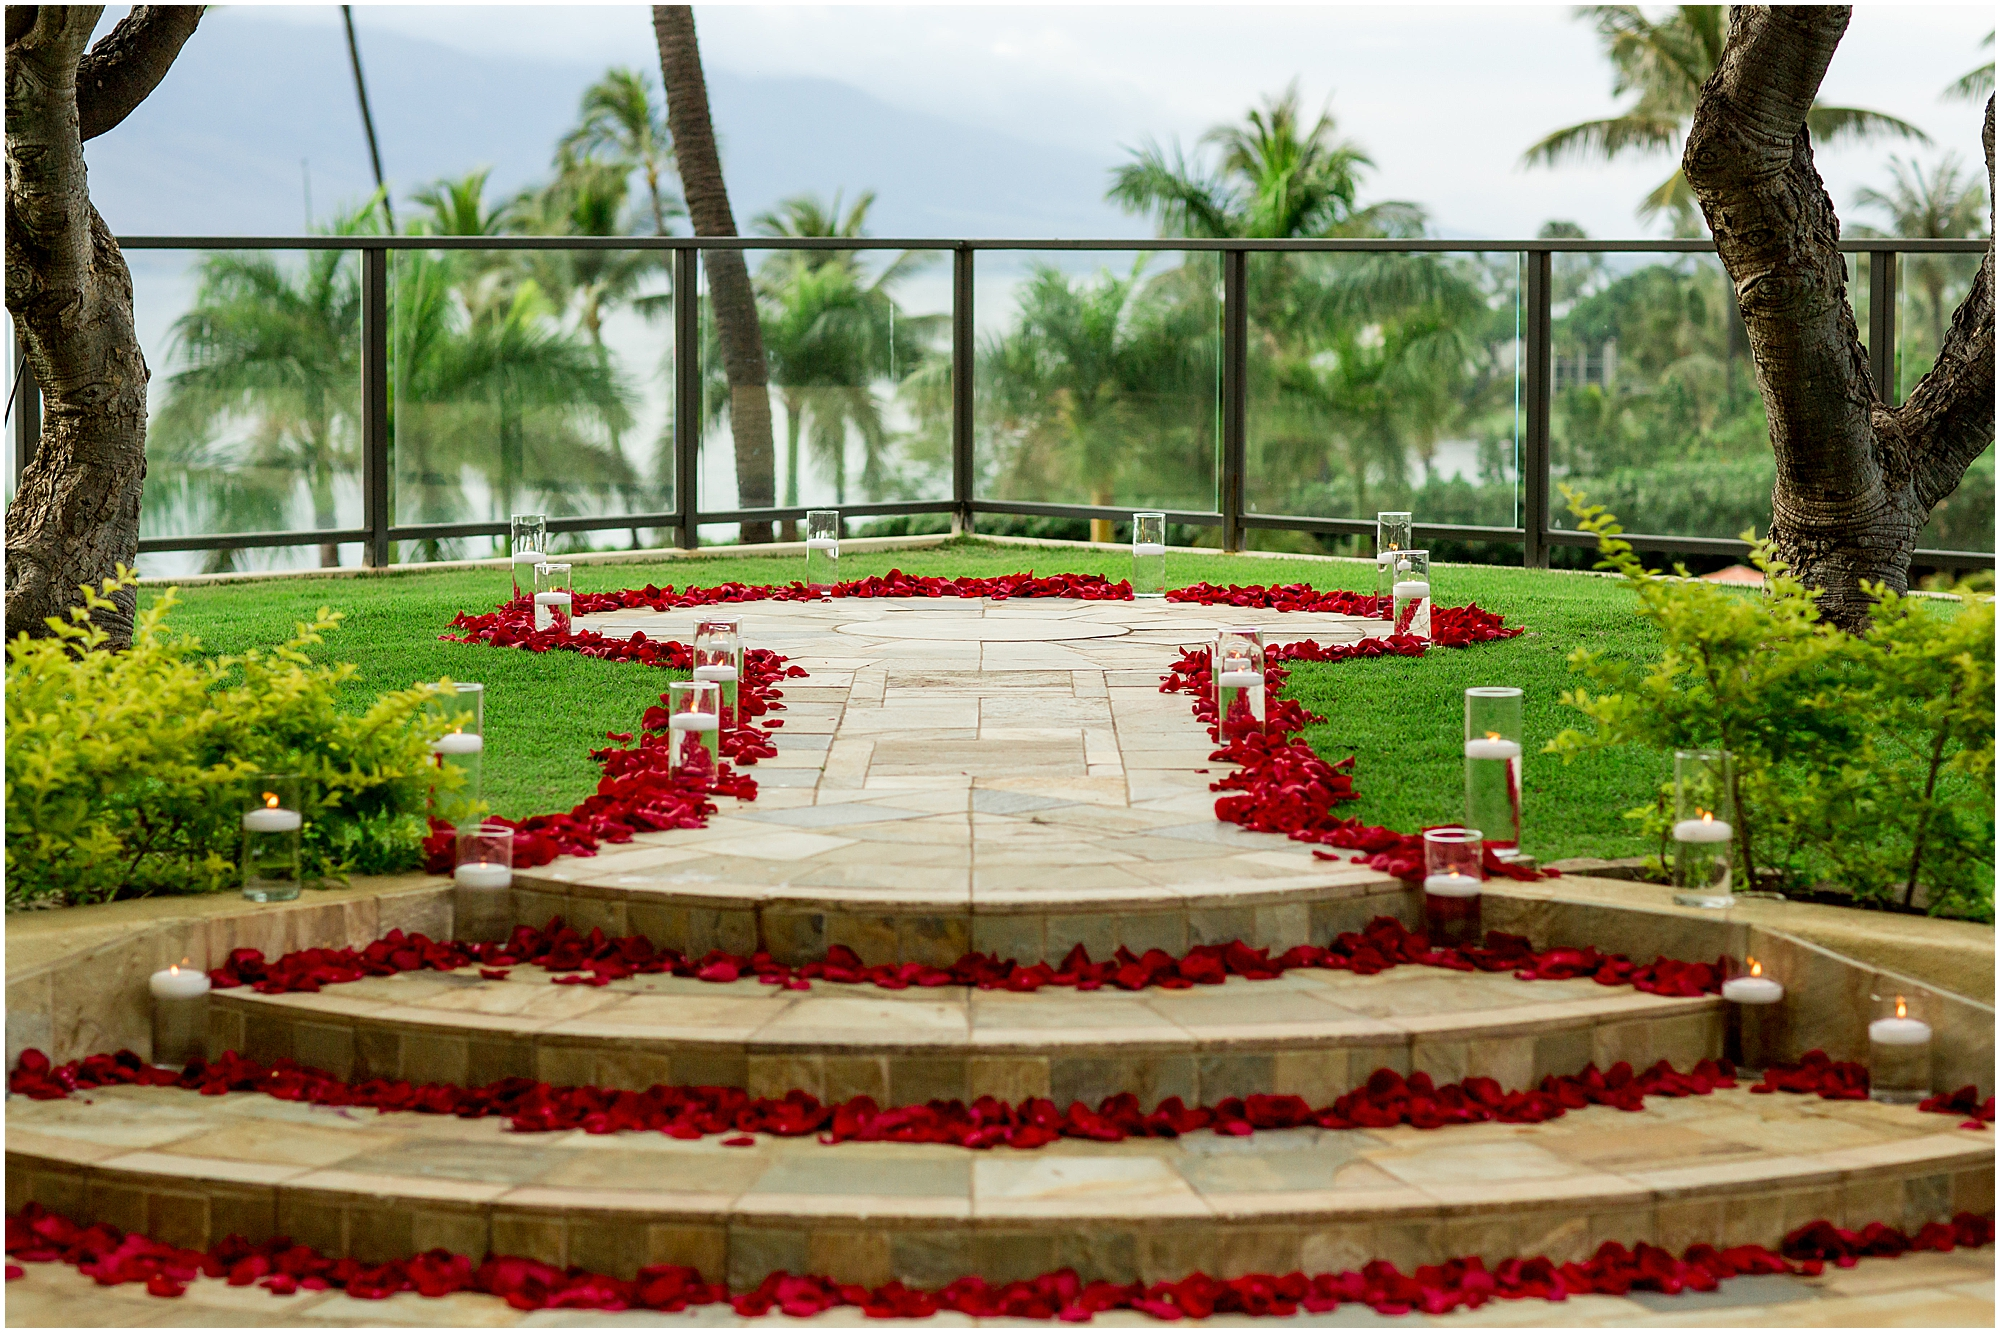 Rose petals scattered for Four Seasons Maui proposal